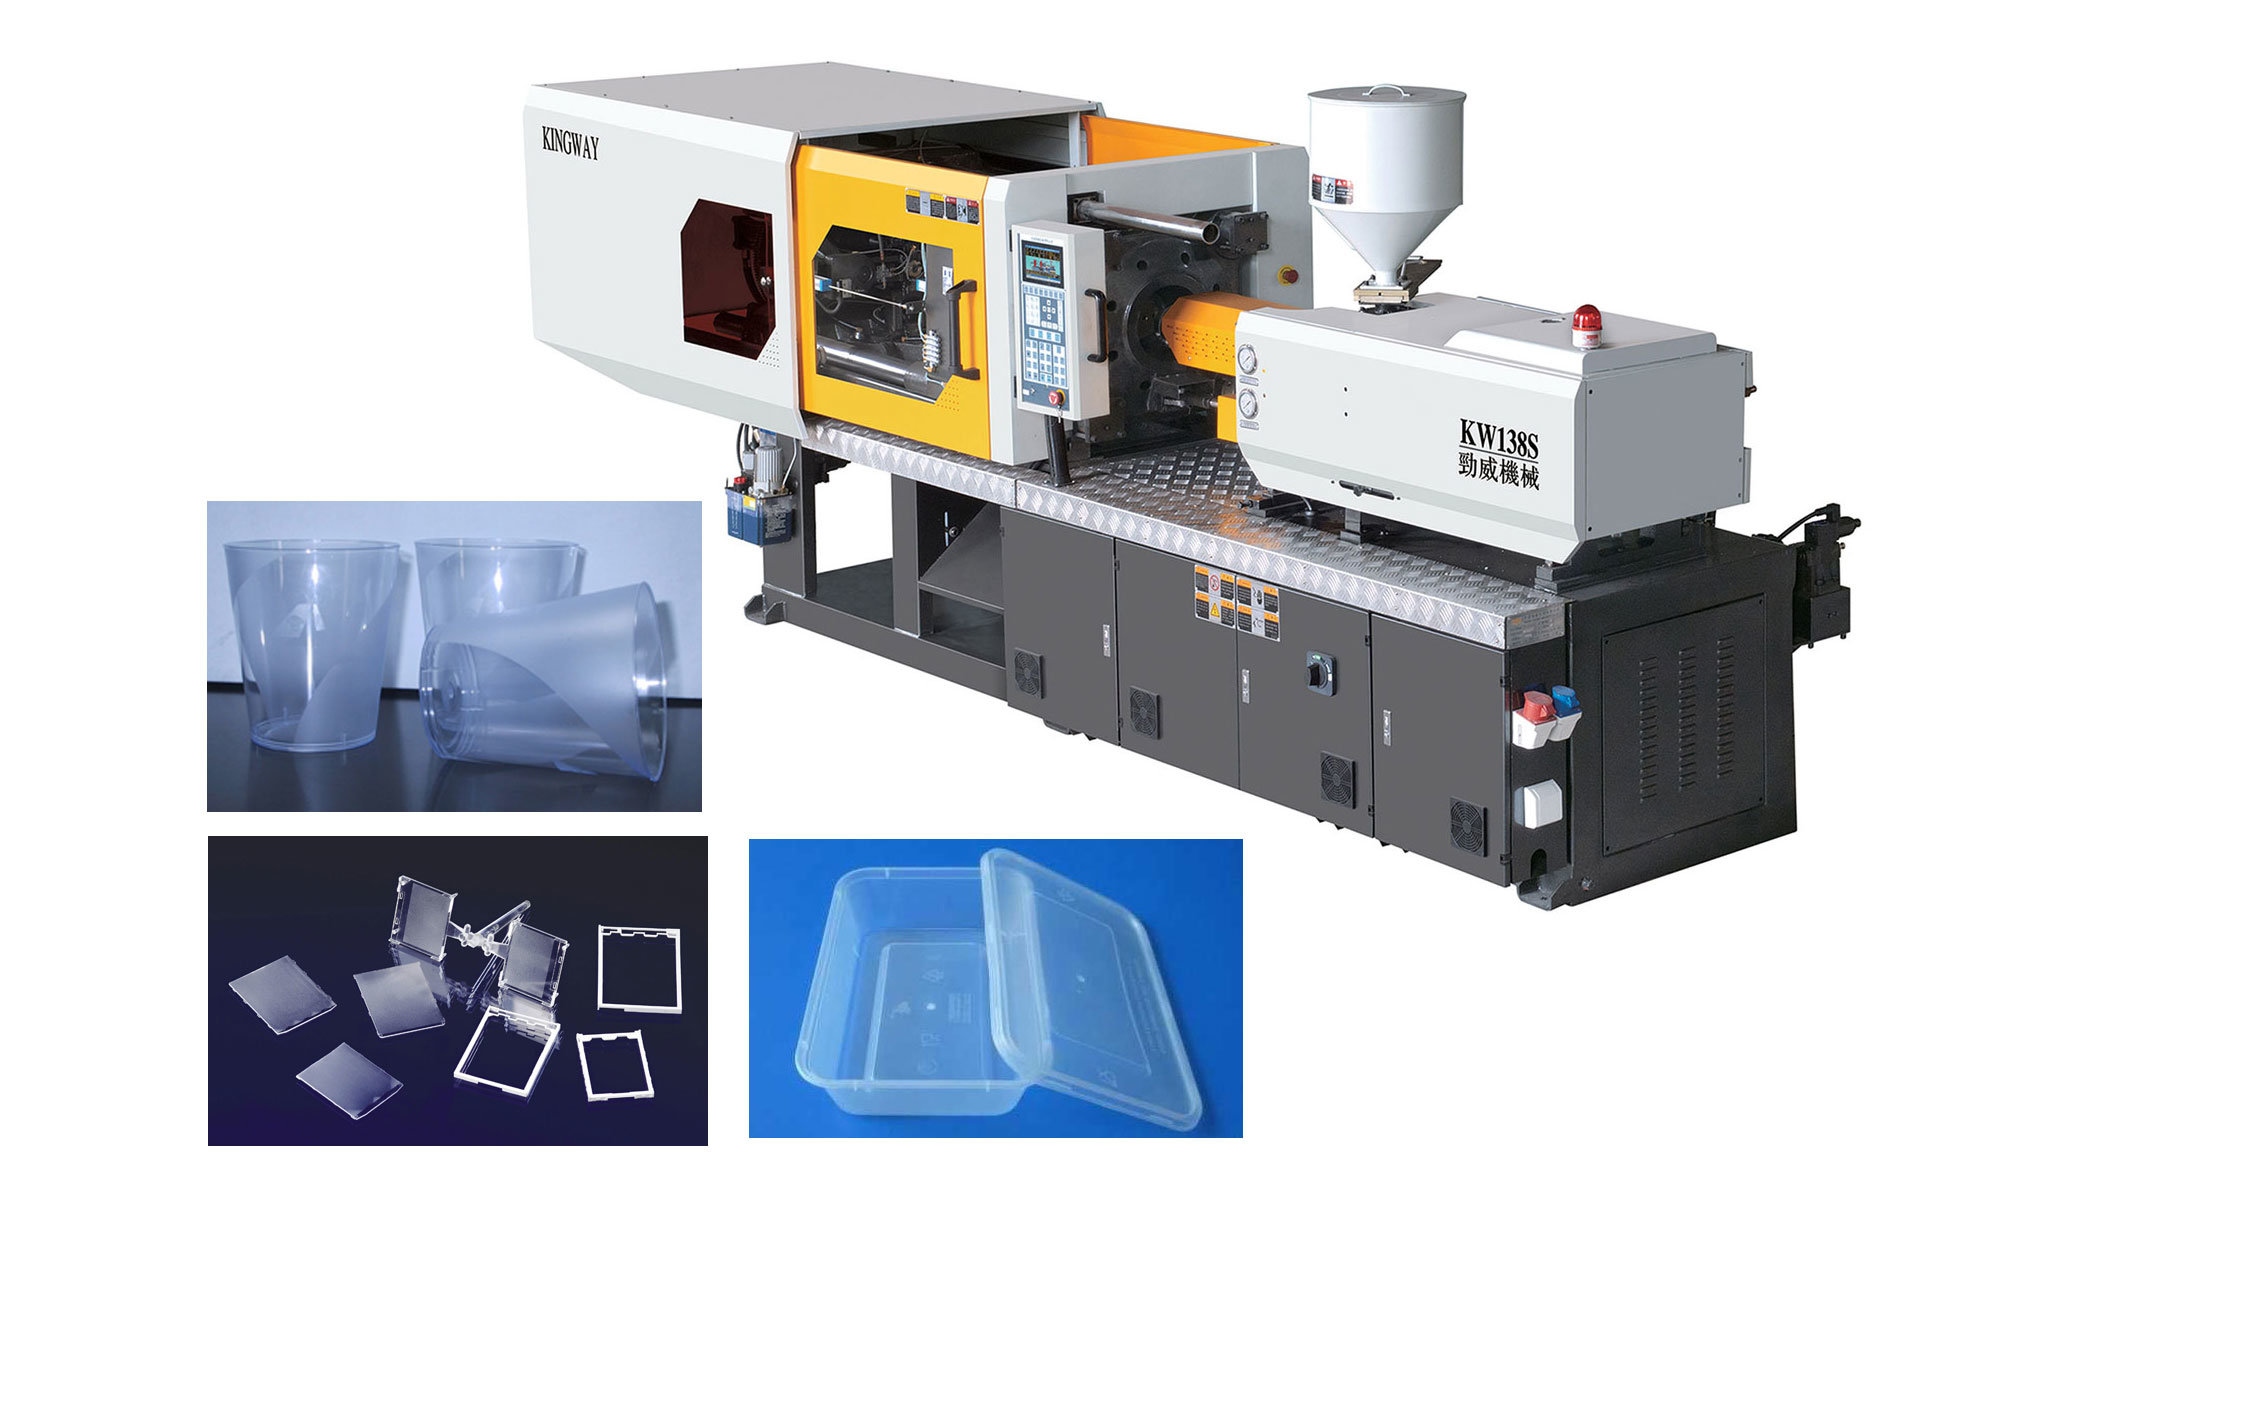 138t High Performance Injection Molding Machine